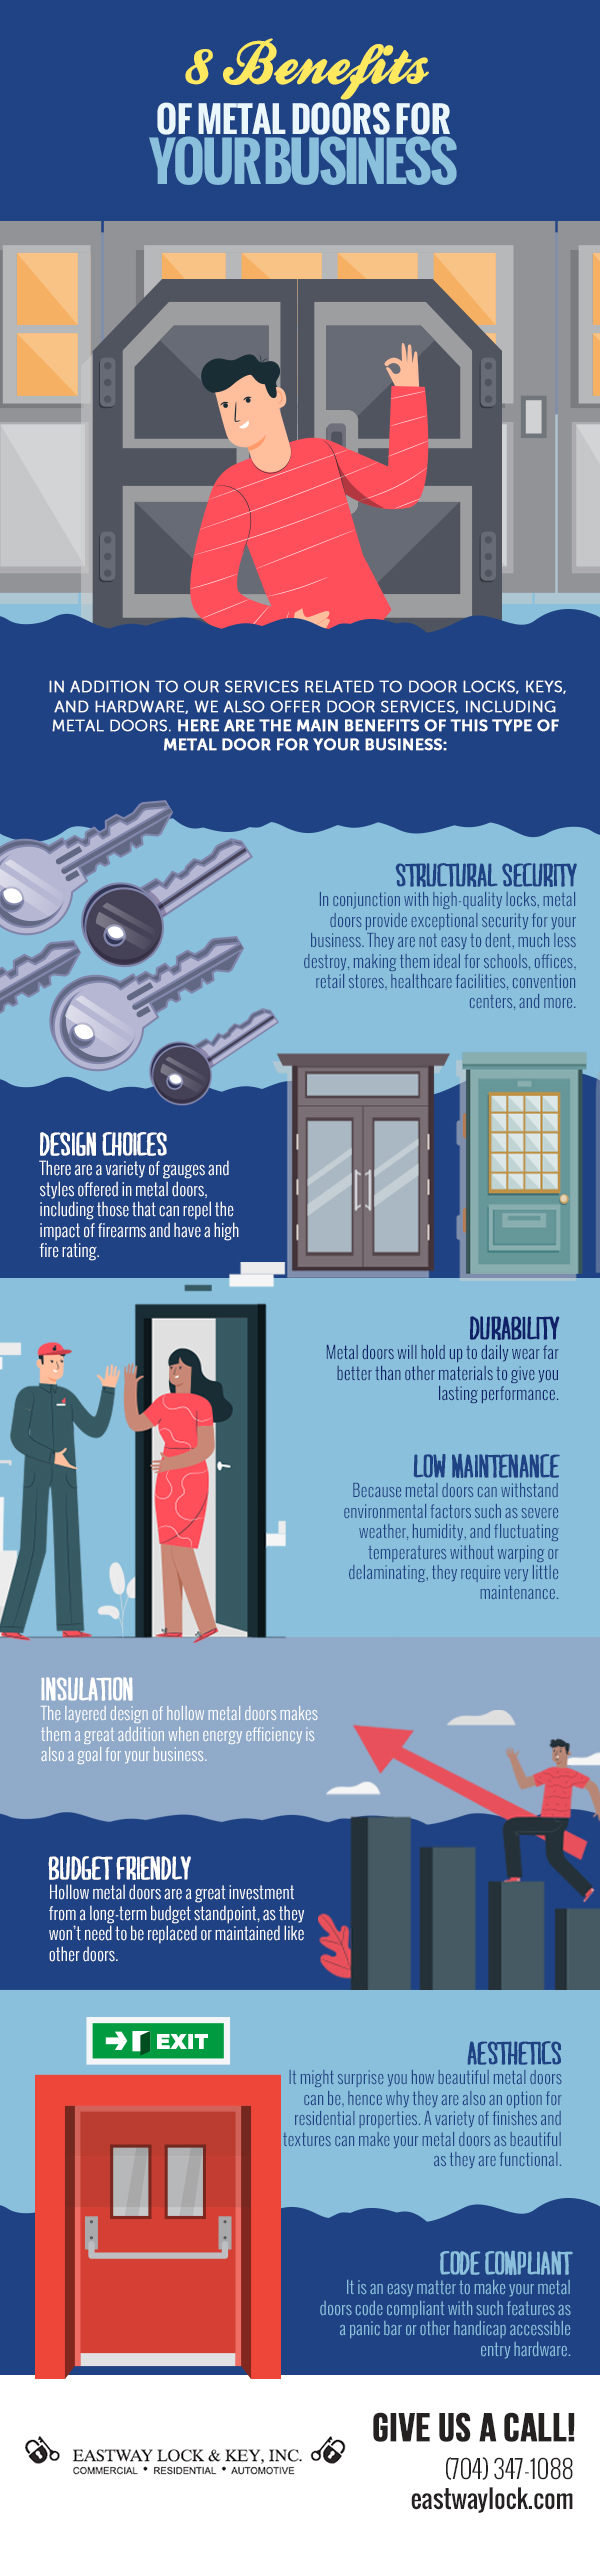 8 benifits of metal doors for your business